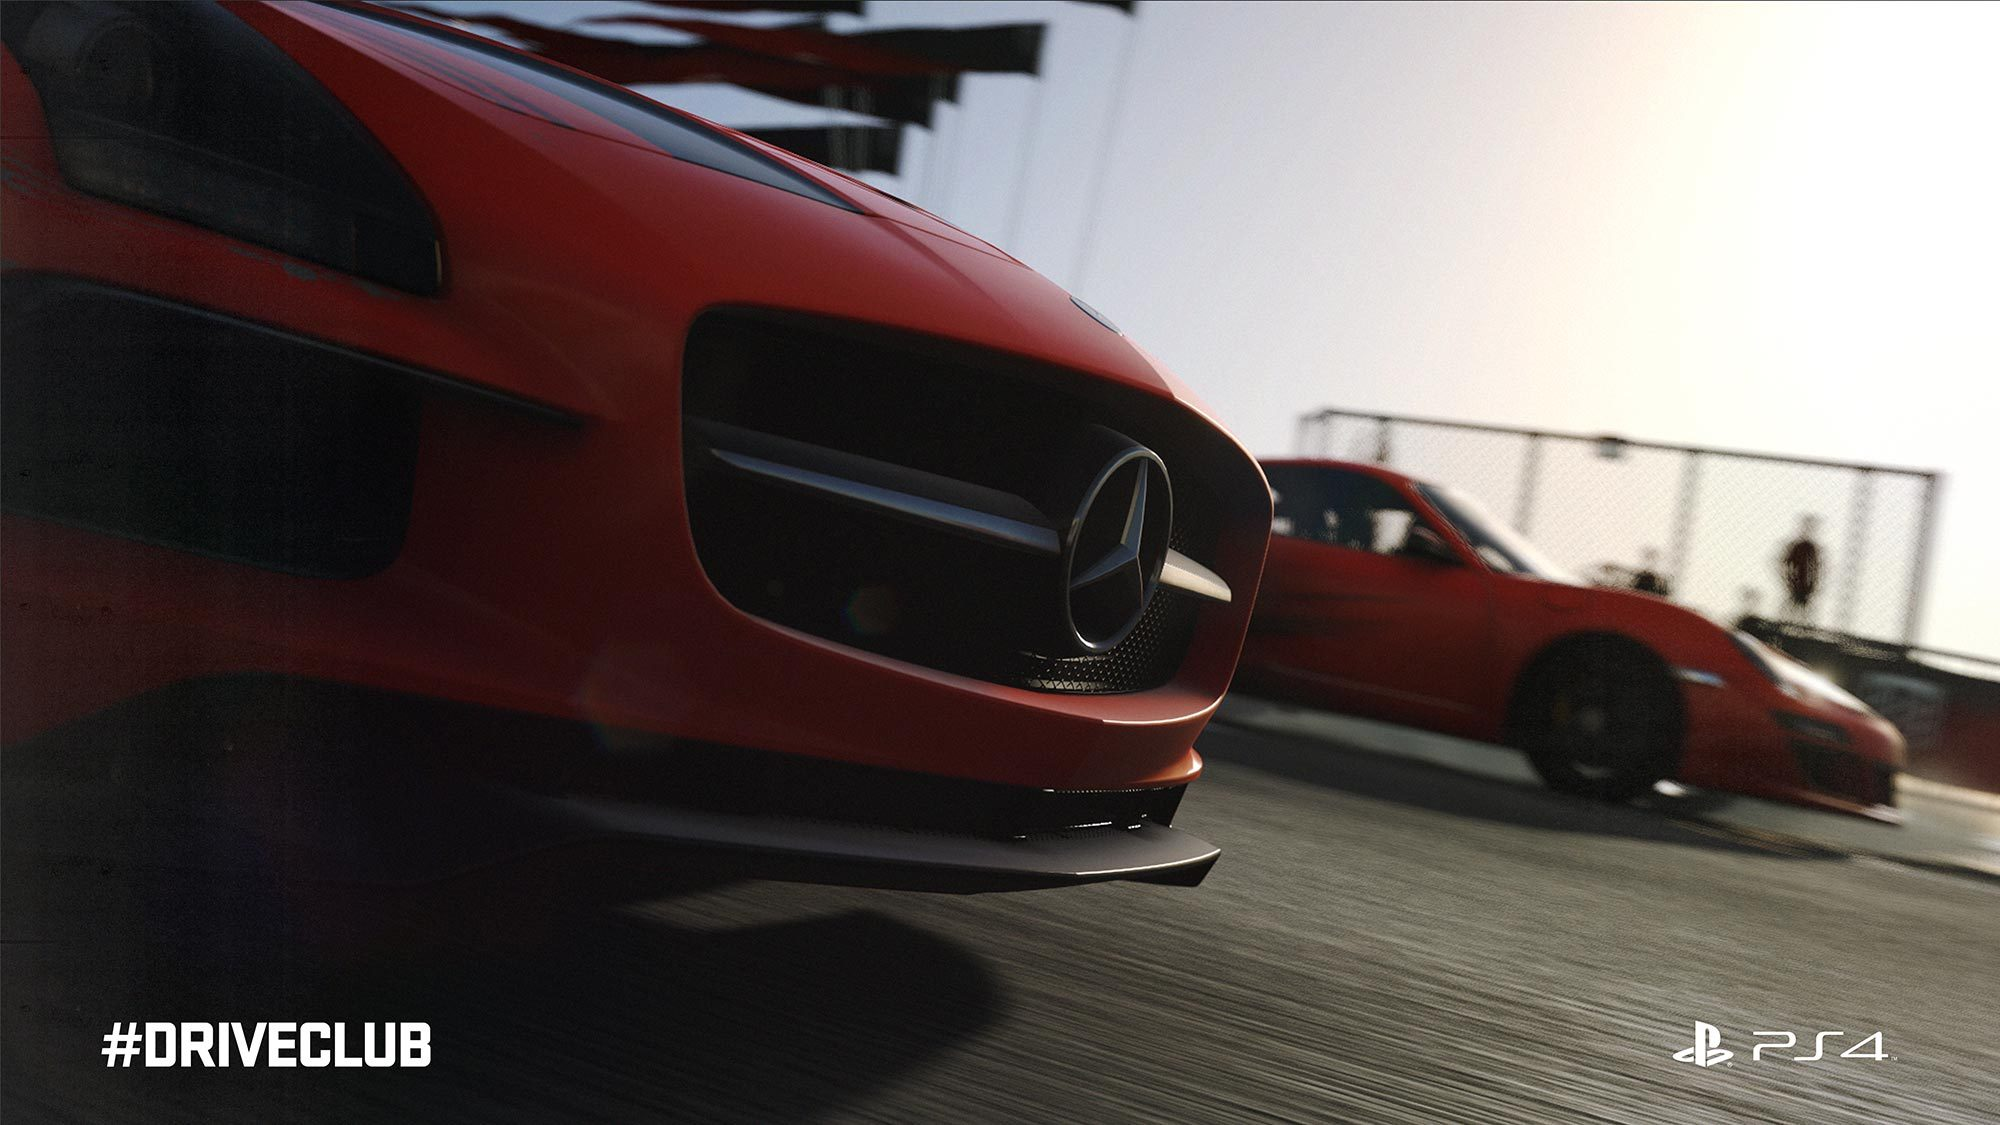 #DRIVECLUB